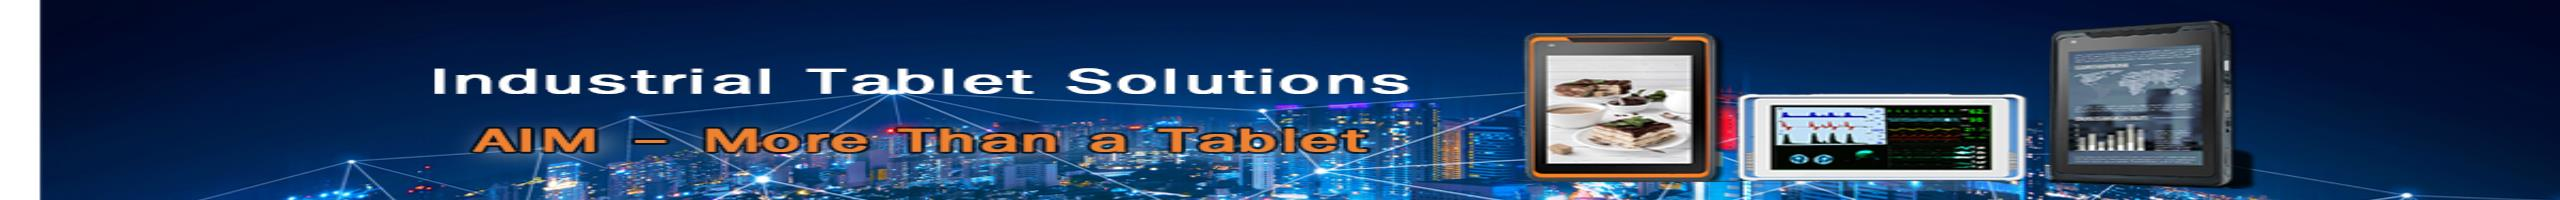 AIM Industrial Tablet Solutions